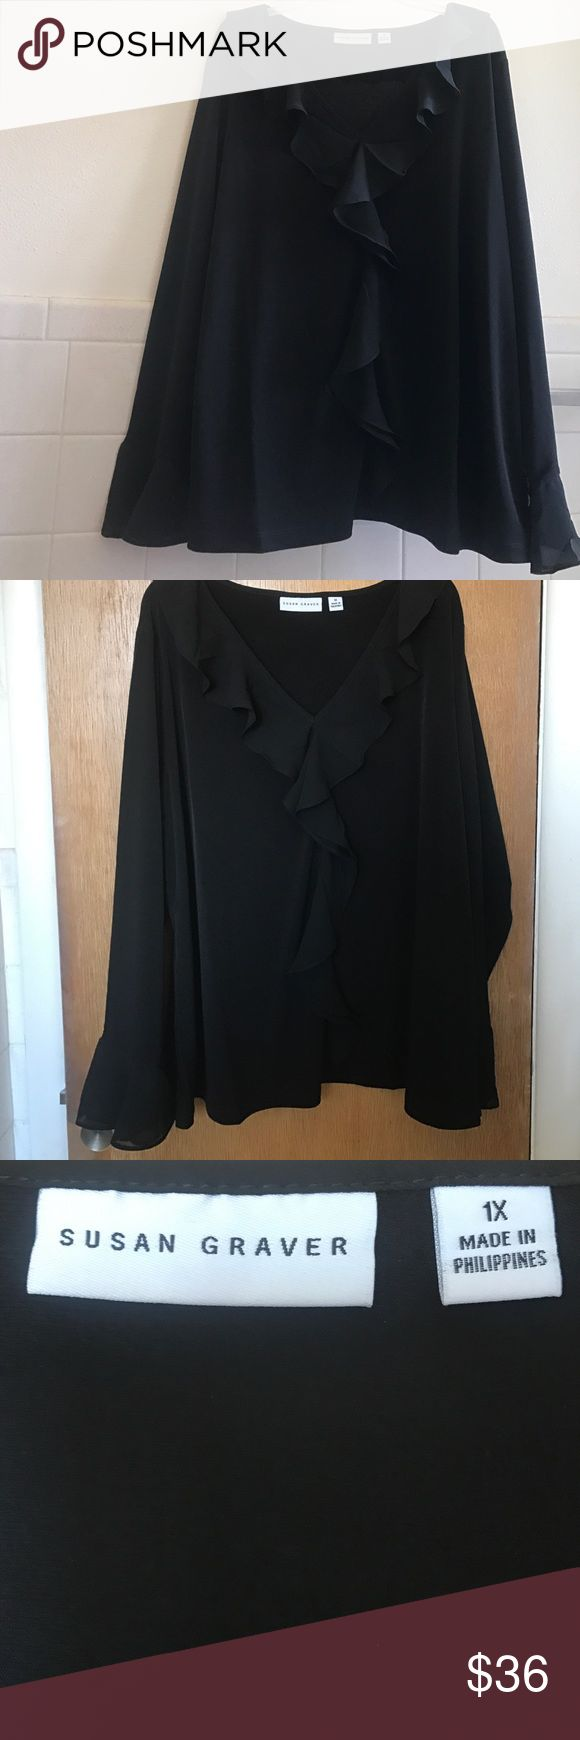 Brand new! Black ruffled Susan Graver top. I adore this top! I wear mine all the time. Sexy for a night out, or perfect for the office. Ruffled detailing, brand new. Susan Graver! Susan Graver Tops Blouses